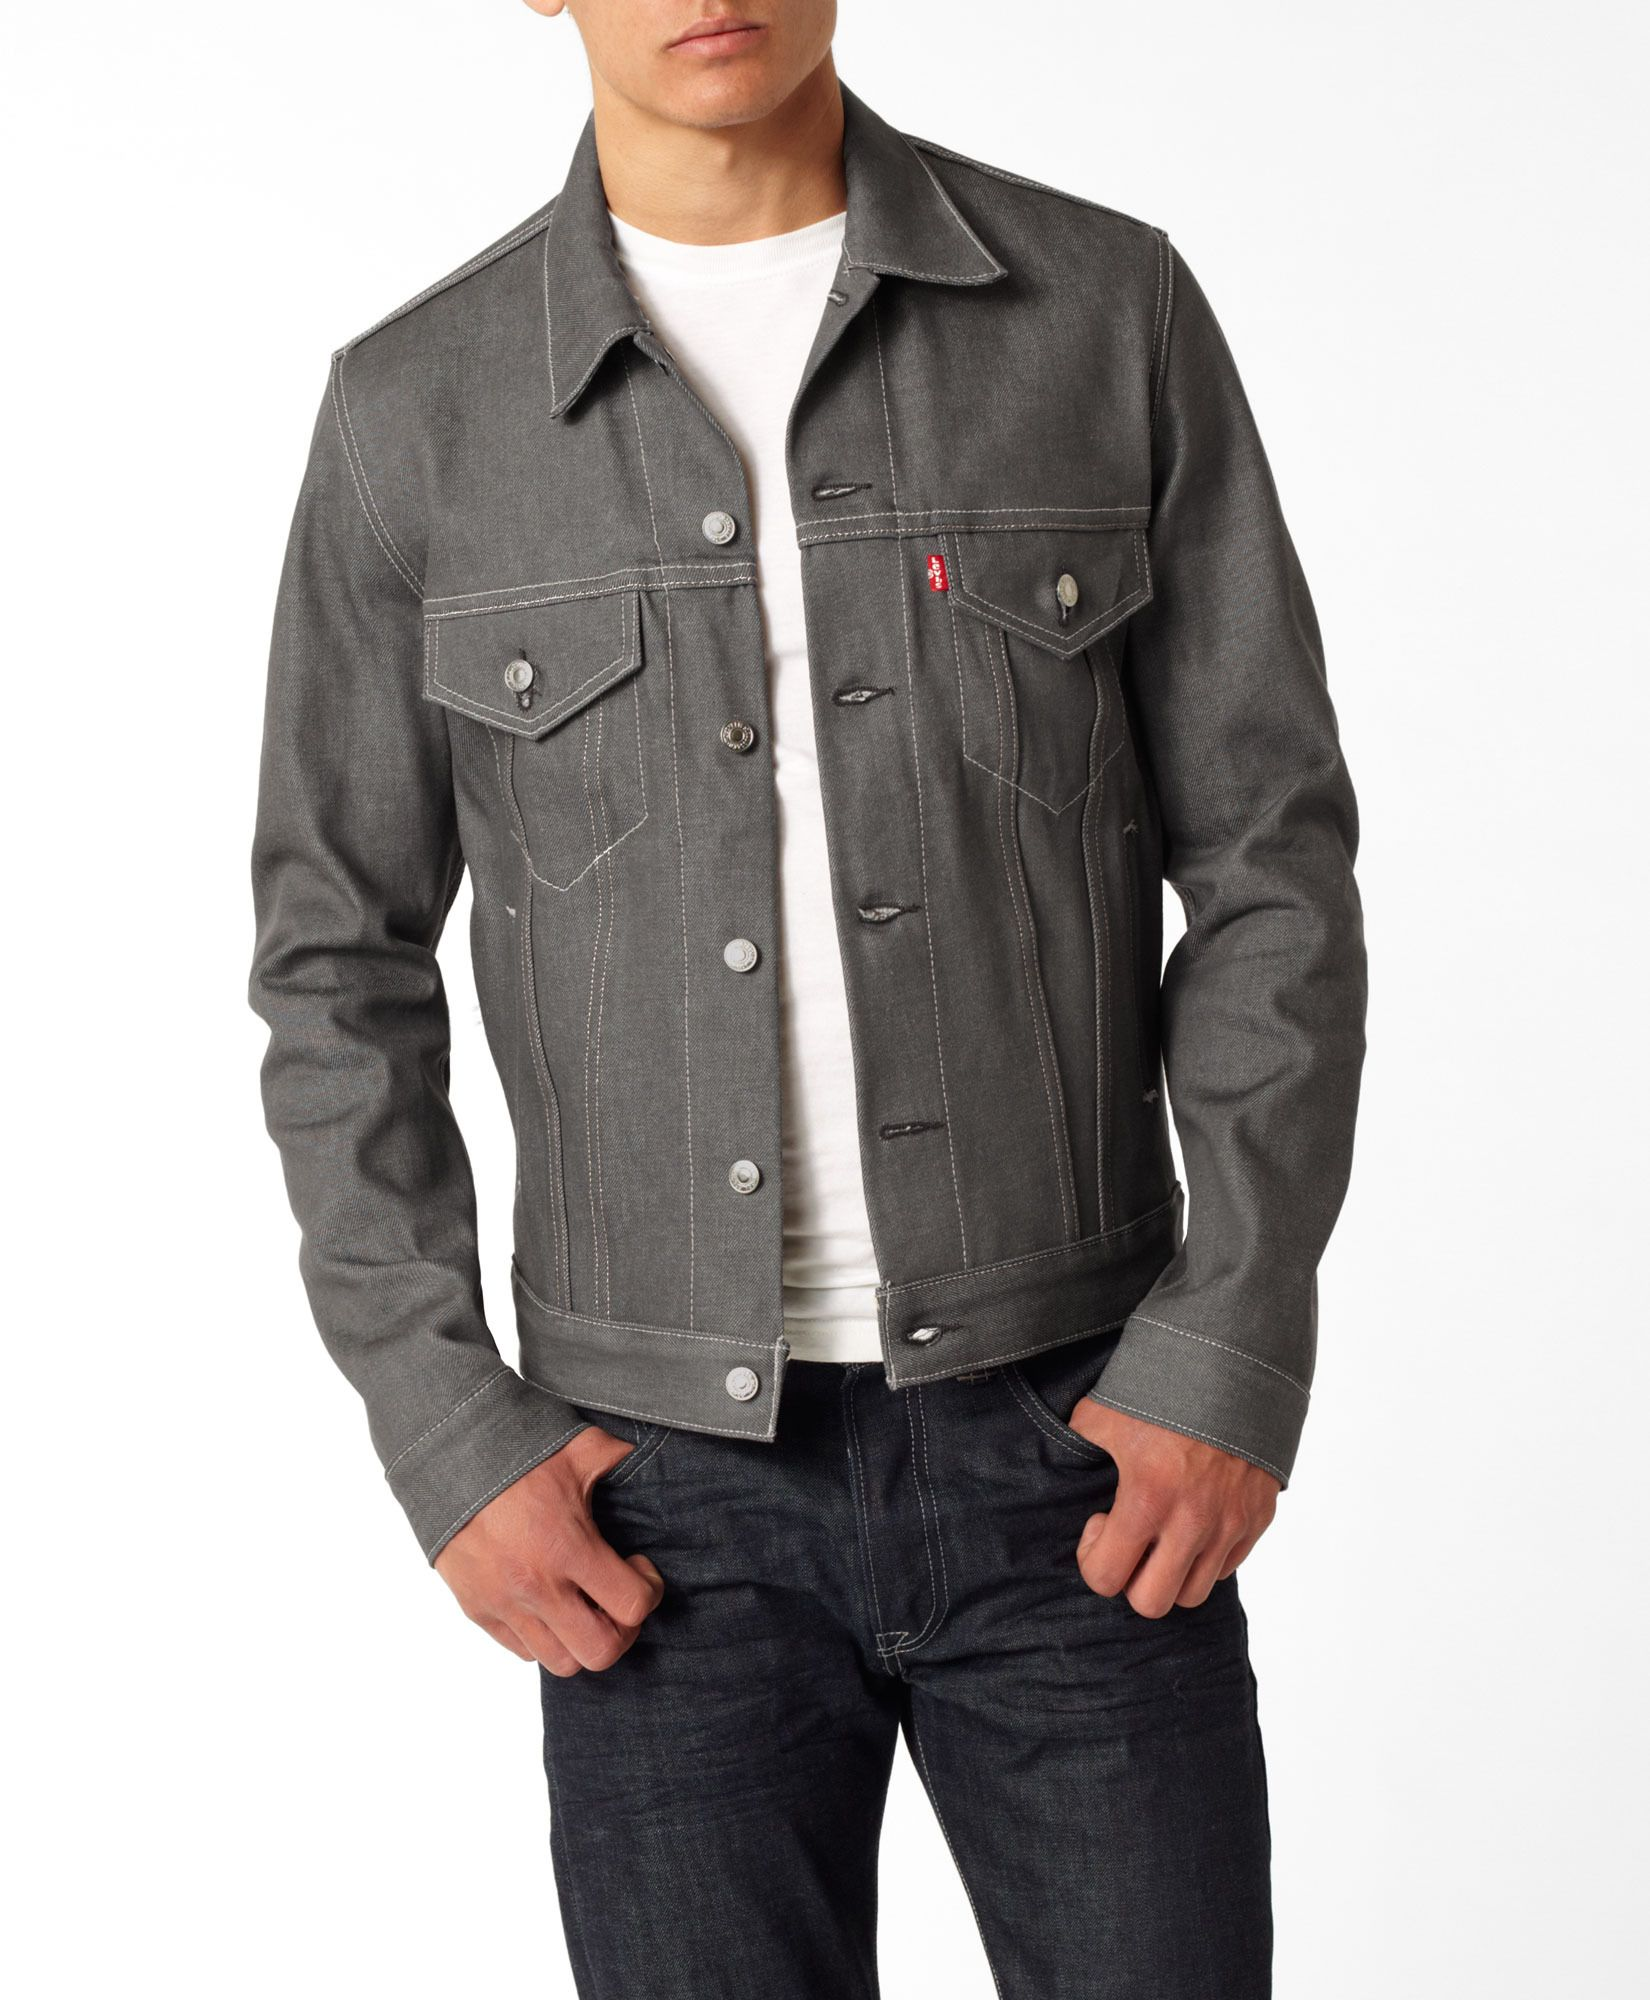 43b5ff67db0 Levi s Trucker Jacket in gray. I love it for men or women. A Levi s classic  since the 1870s